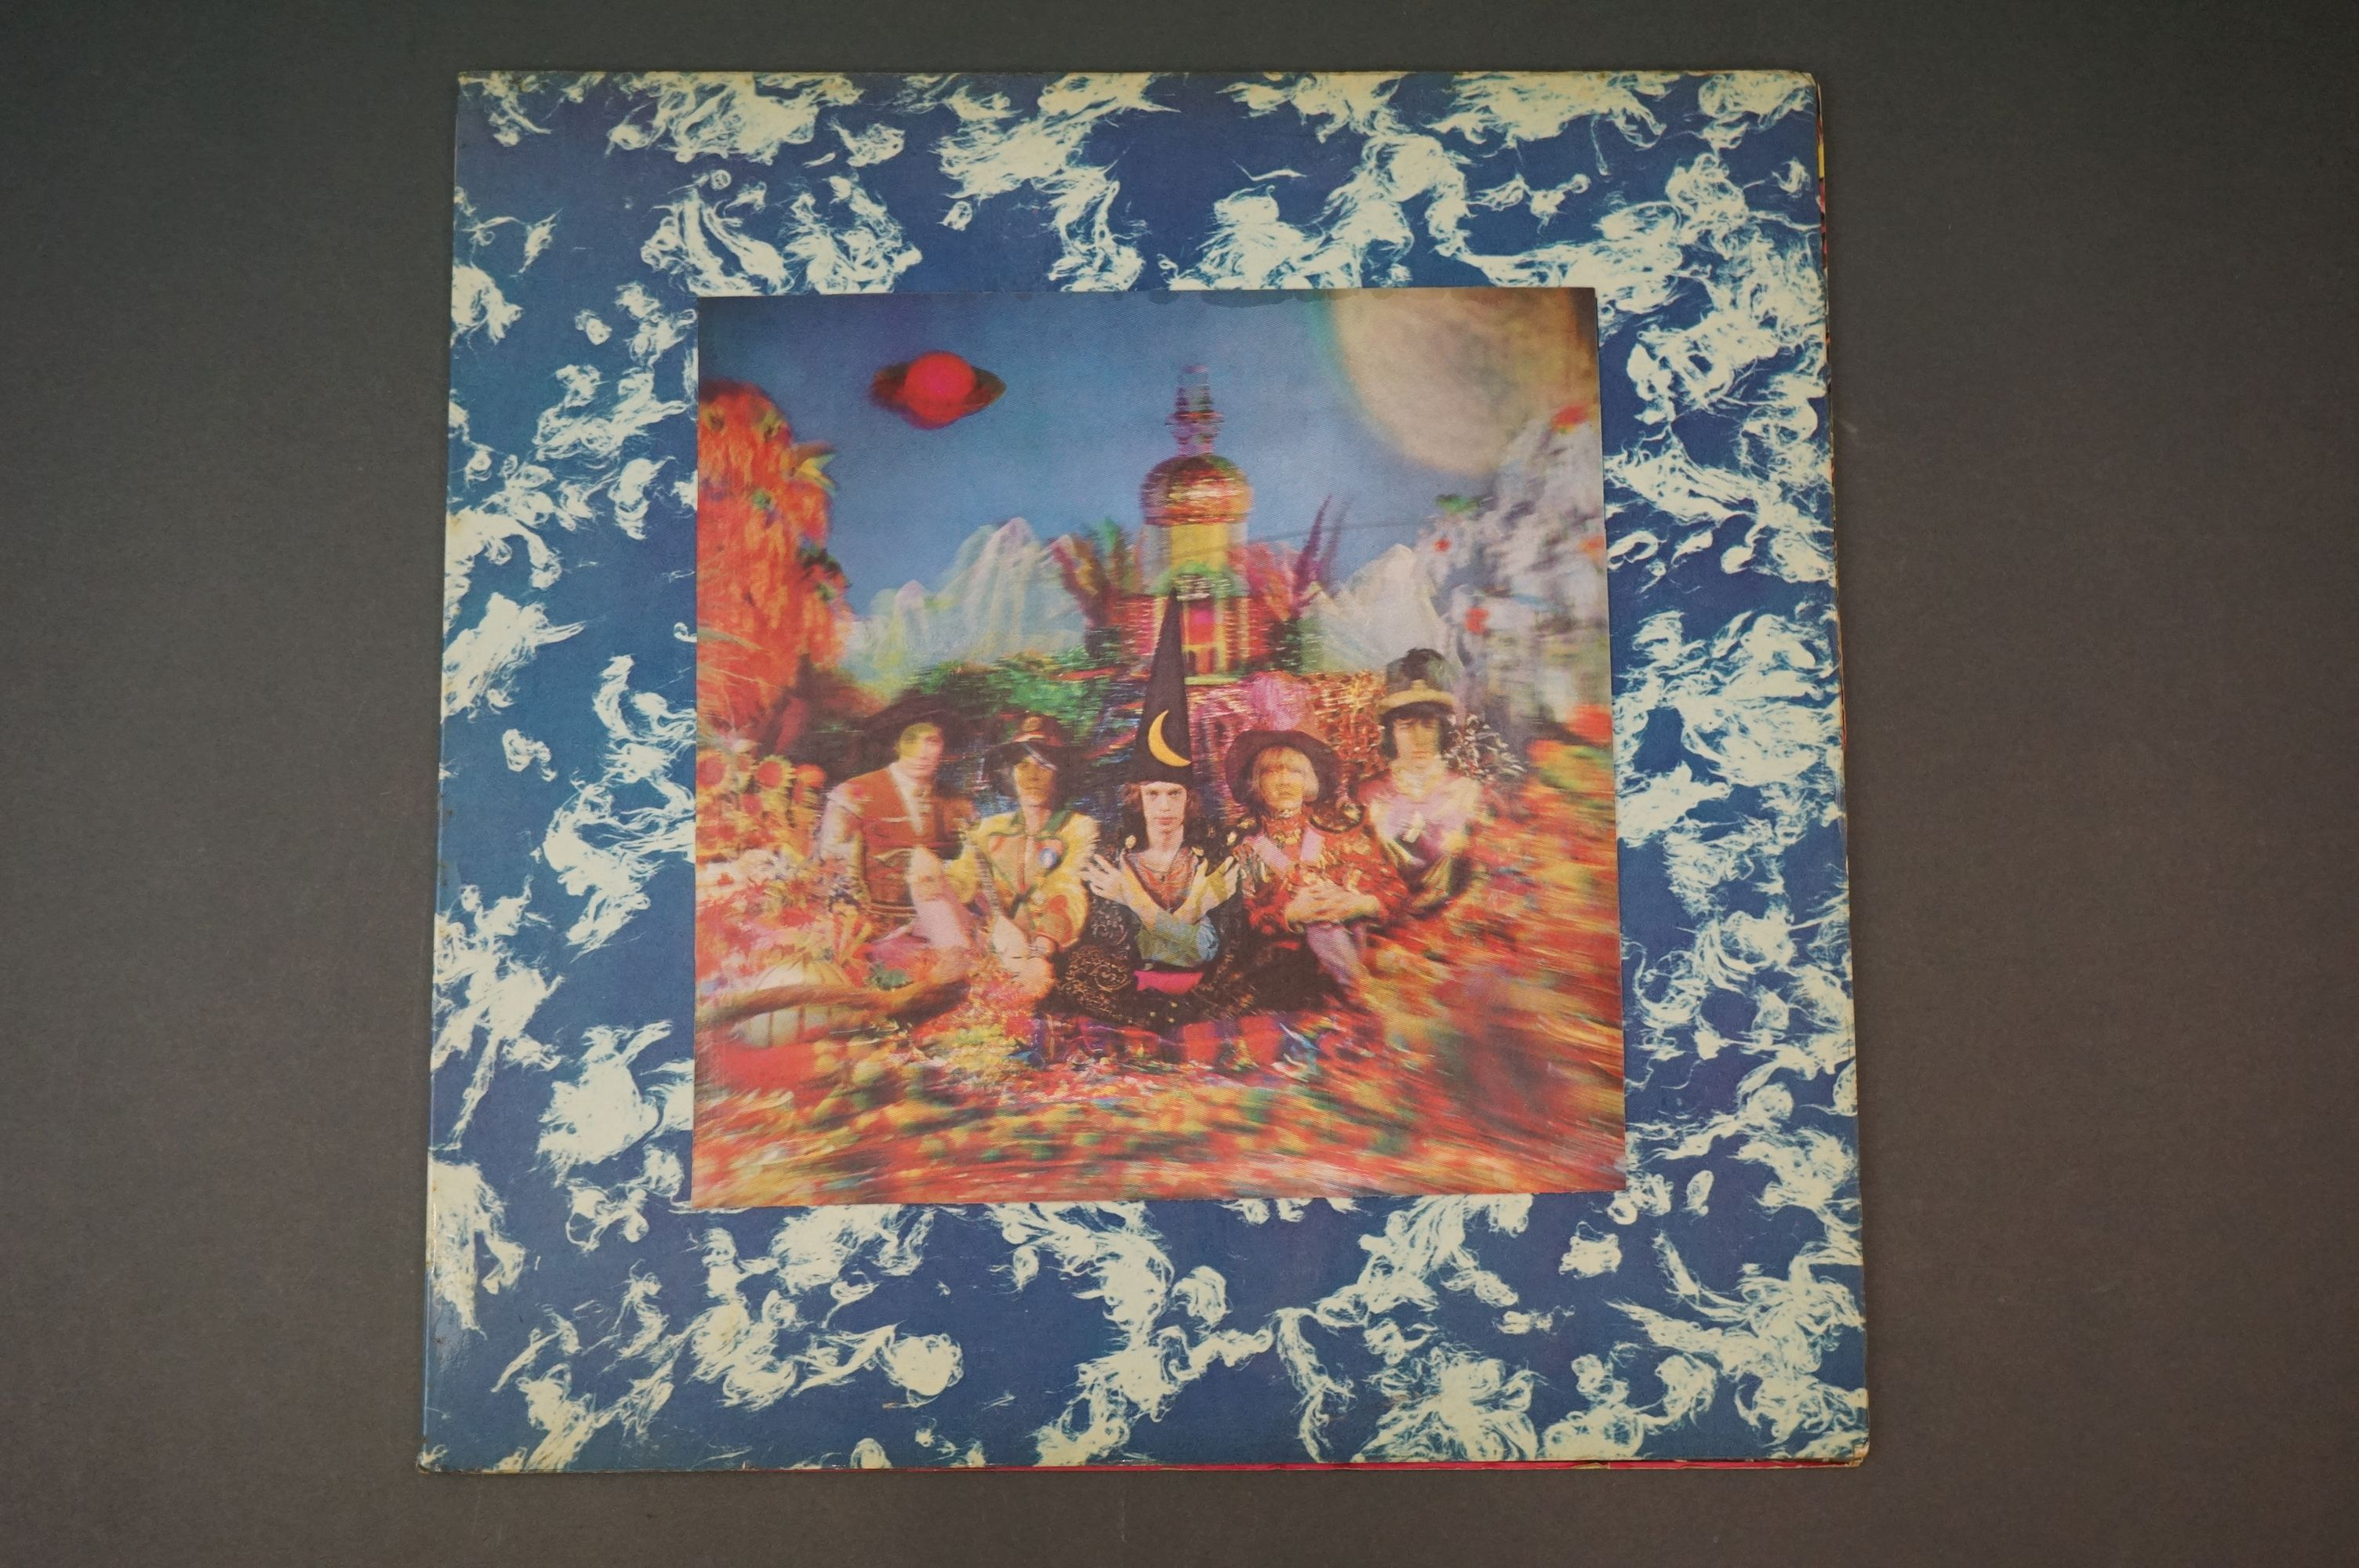 Vinyl - The Rolling Stones Their Satanic Majesties Request TXS103, Decca unboxed green stereo label,